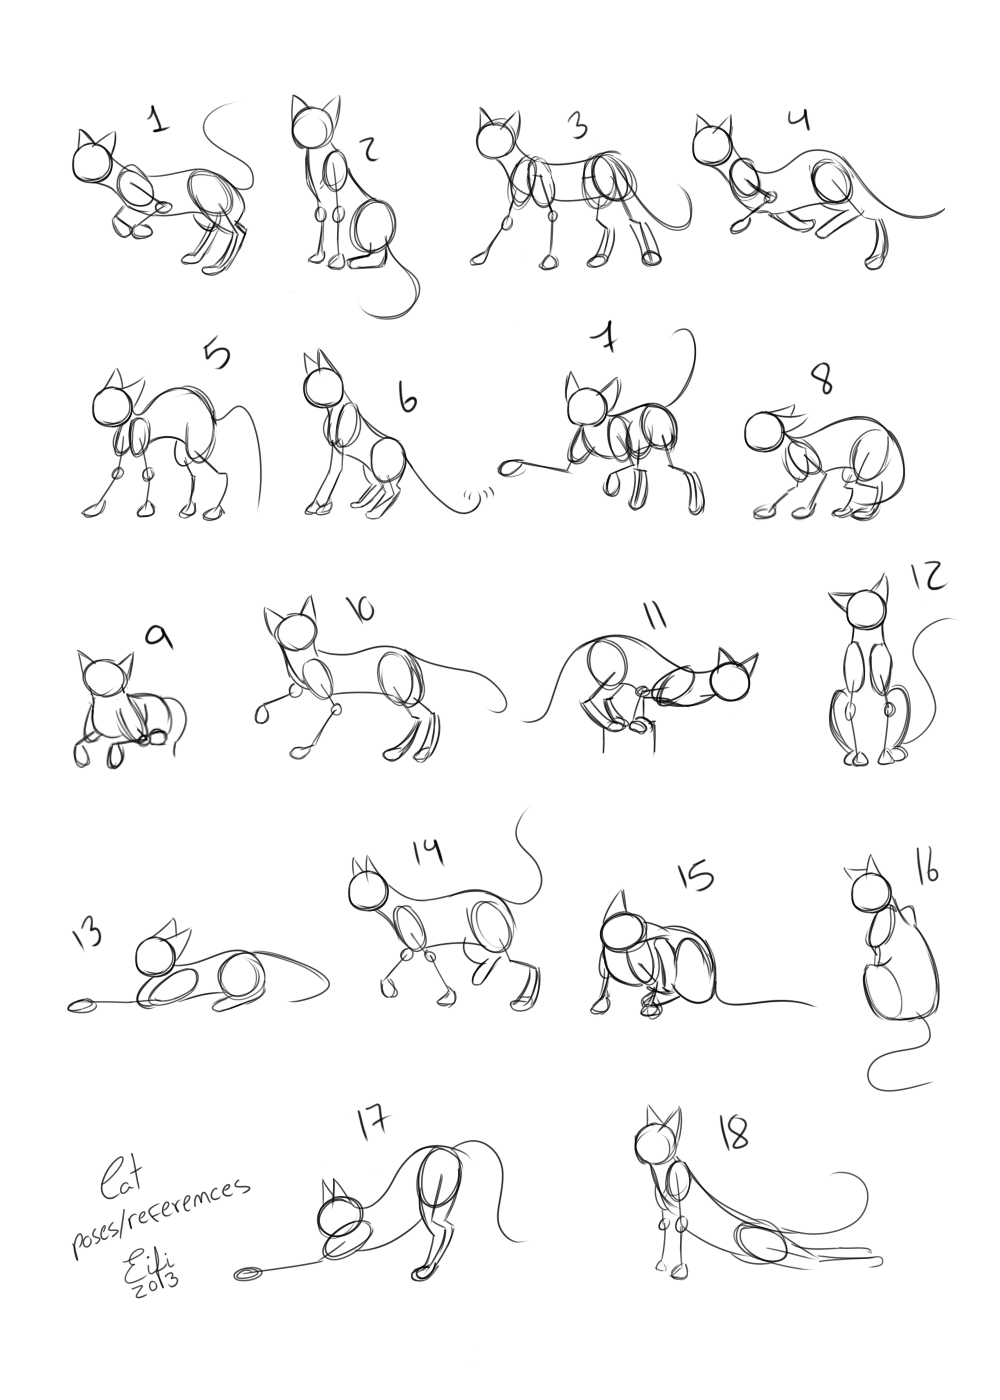 Cats Poses References by Eifi--Copper.deviantart.com on